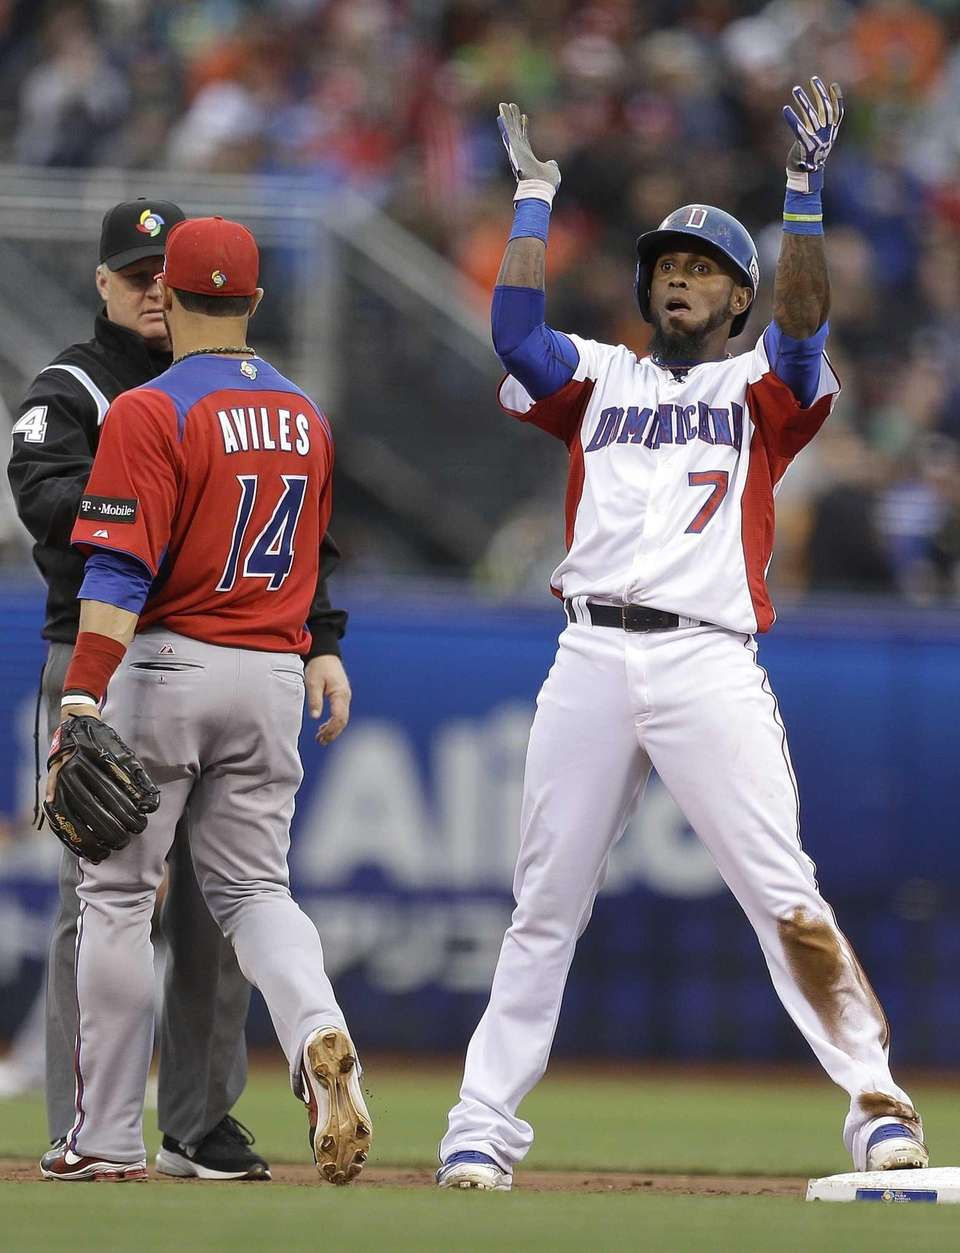 Dominican Republic's Jose Reyes celebrates after hitting a